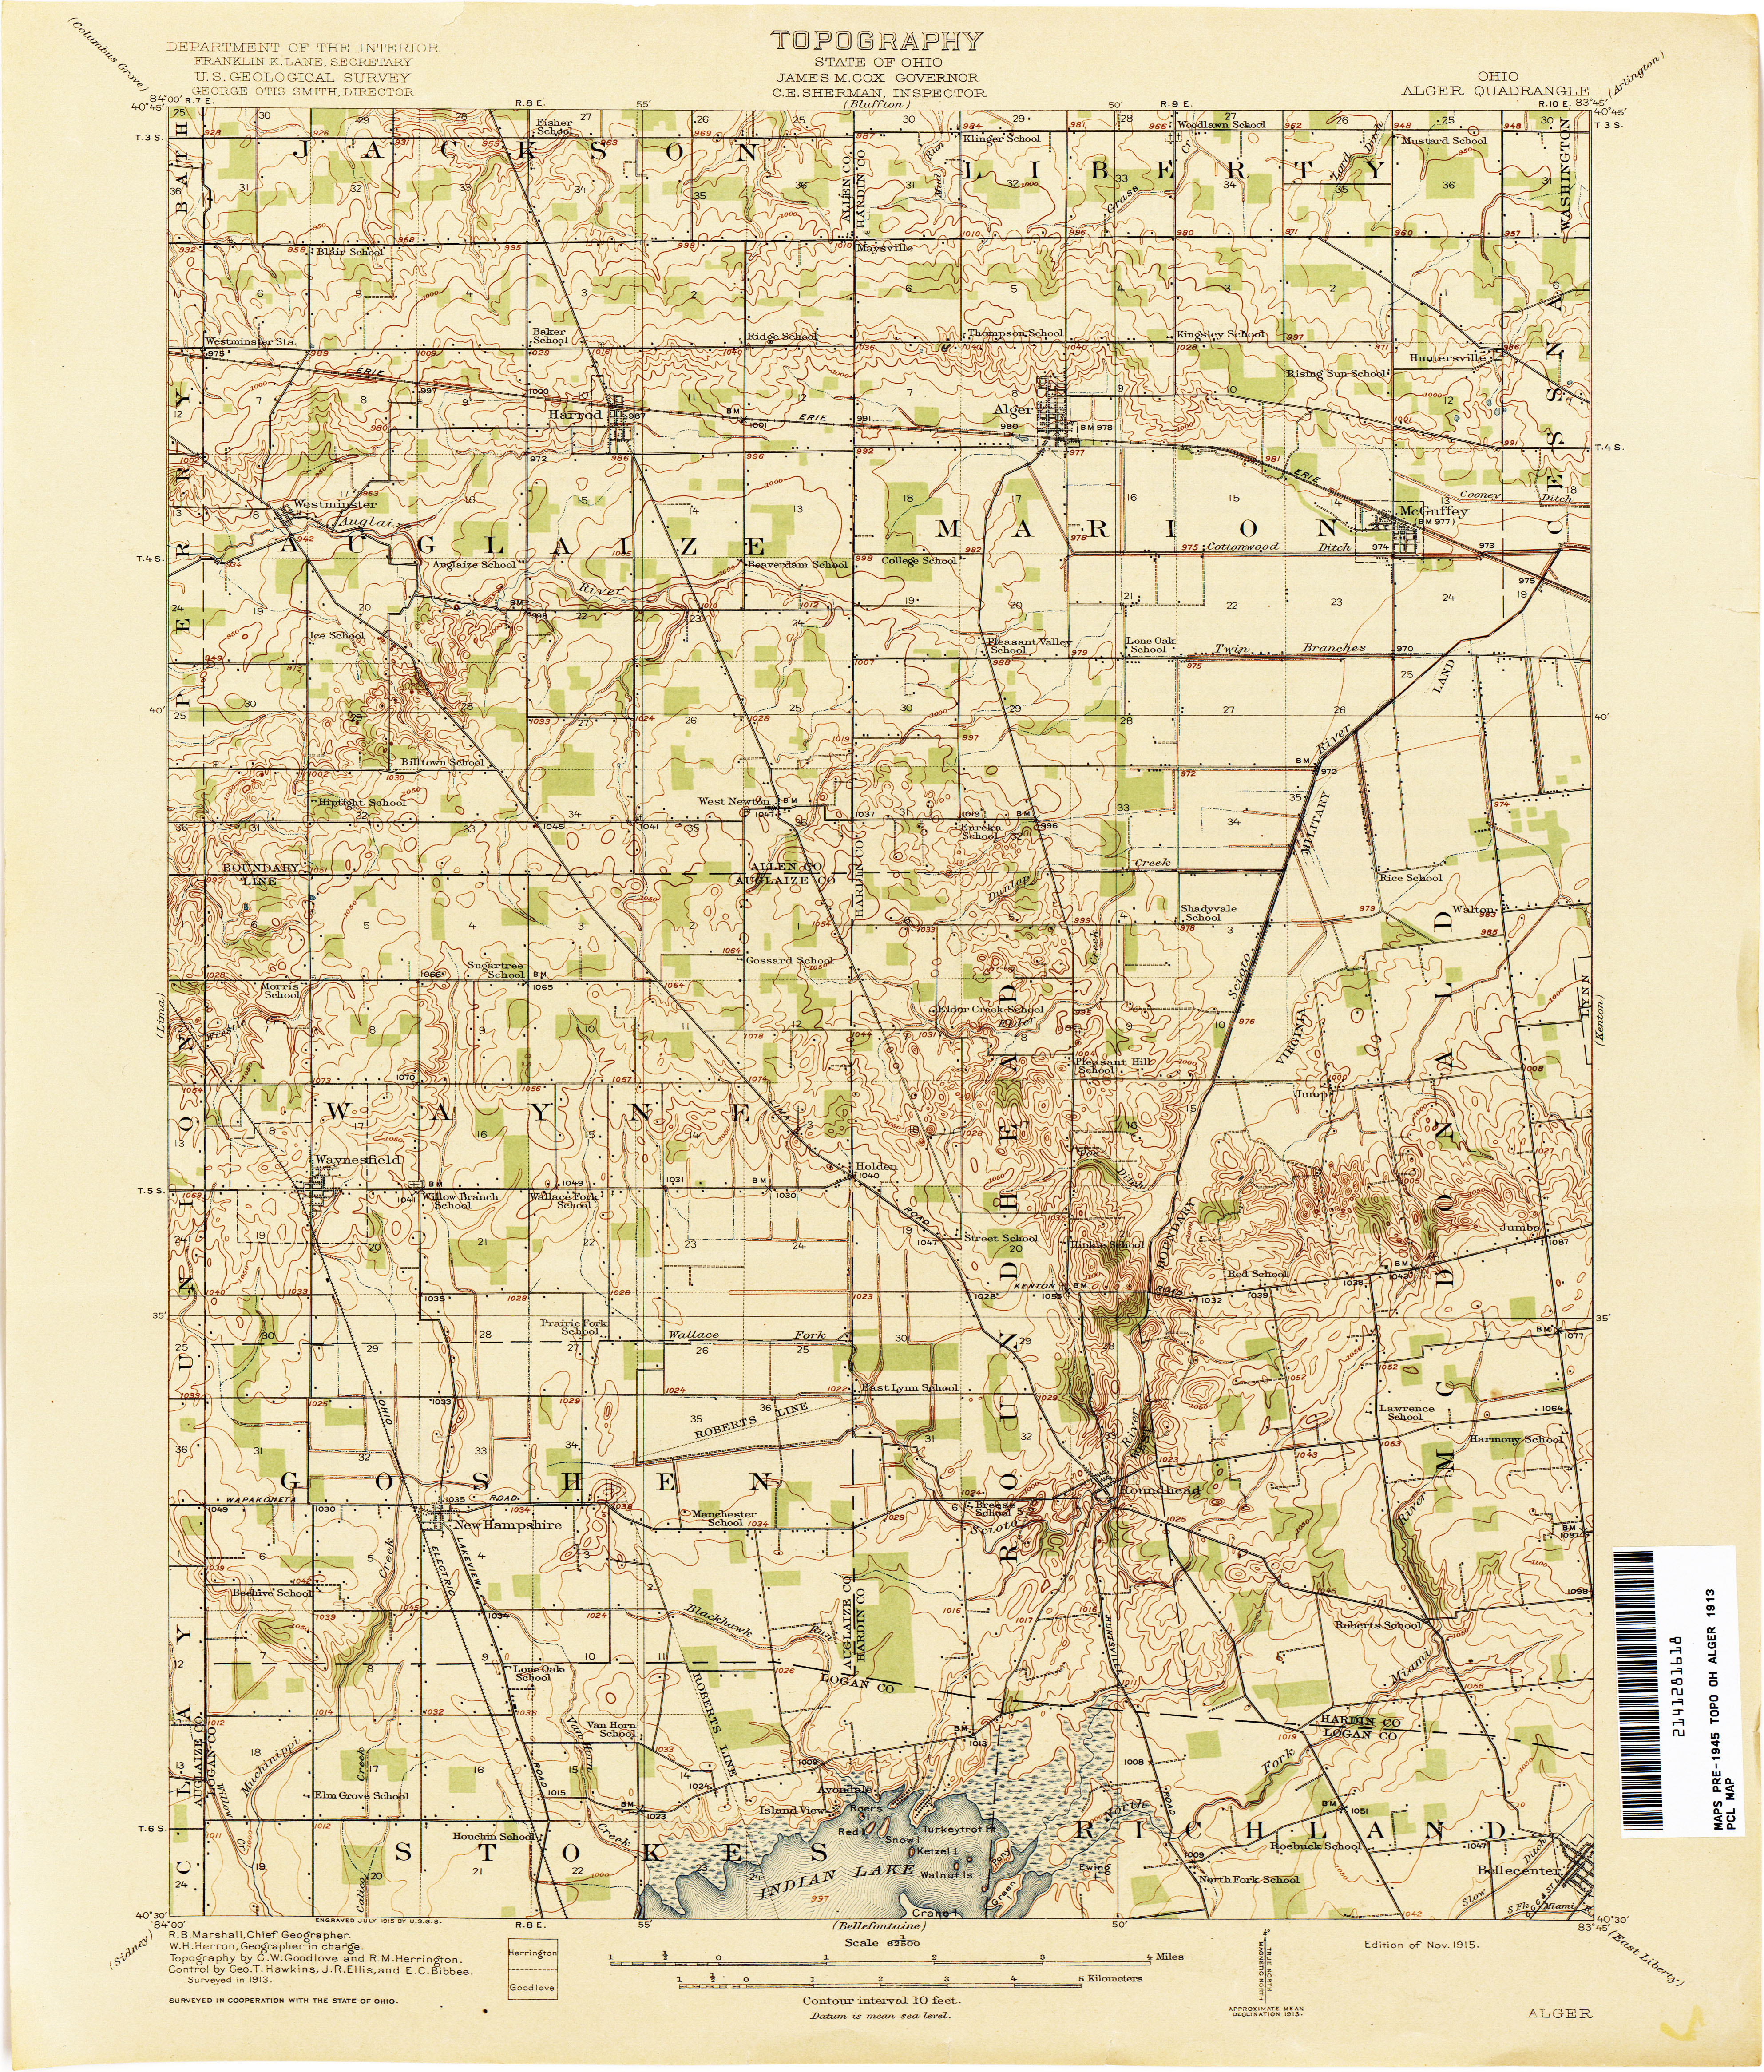 Ohio Historical Topographic Maps Perry Casta±eda Map Collection